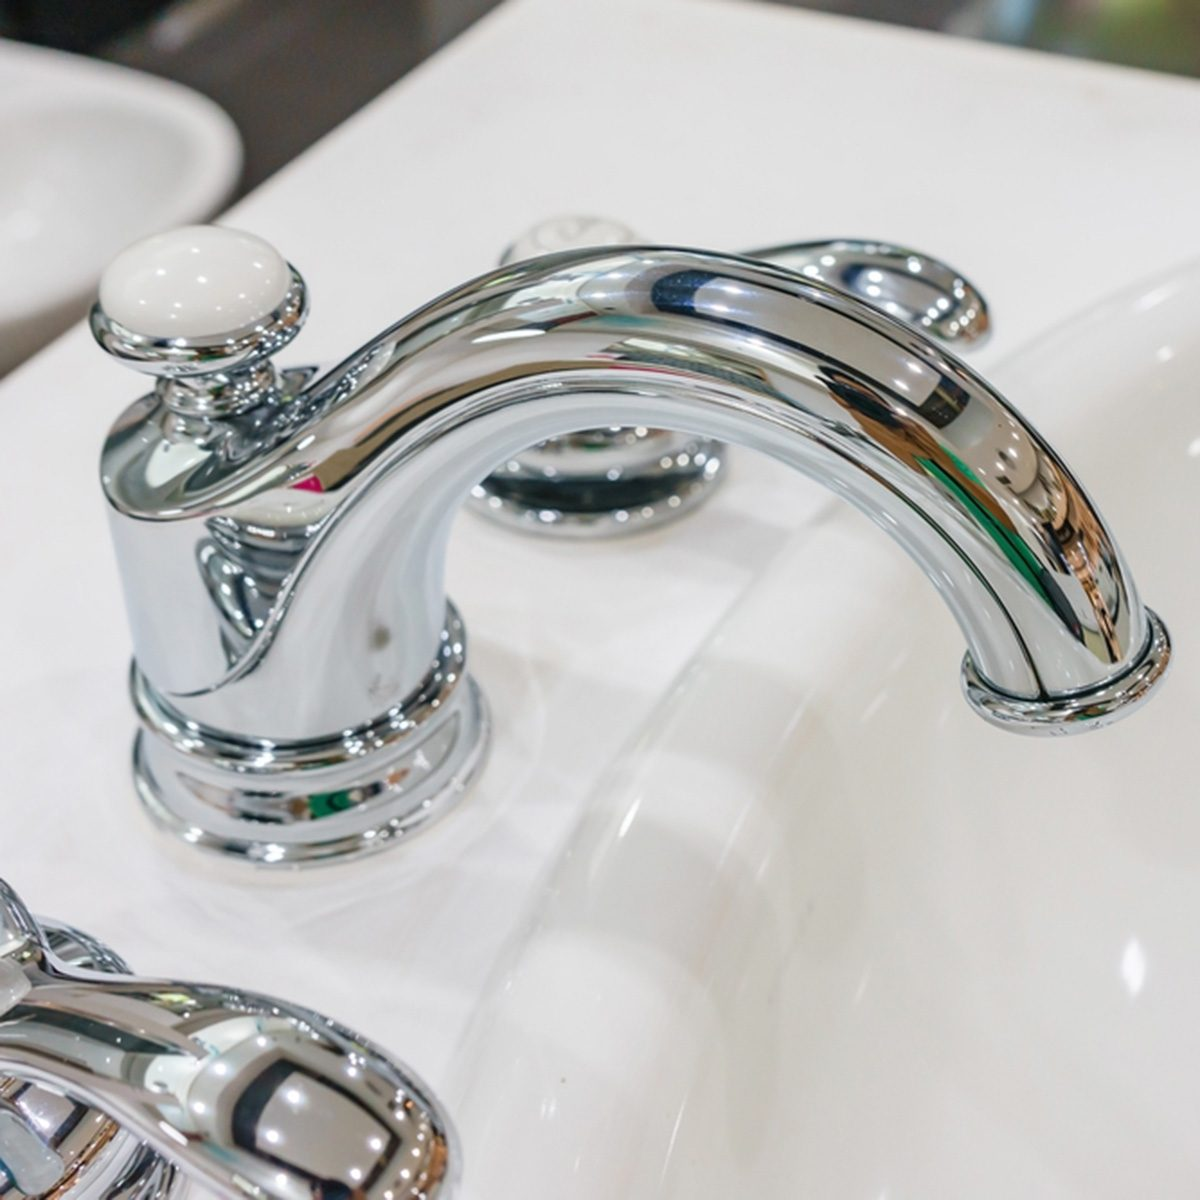 Chrome bathroom faucet. Bathroom water tap. Modern faucet. Bathroom interior. Modern design. Luxury faucet. Modern water tap. Chrome faucet; Shutterstock ID 714816445; Job (TFH, TOH, RD, BNB, CWM, CM): Taste of Home